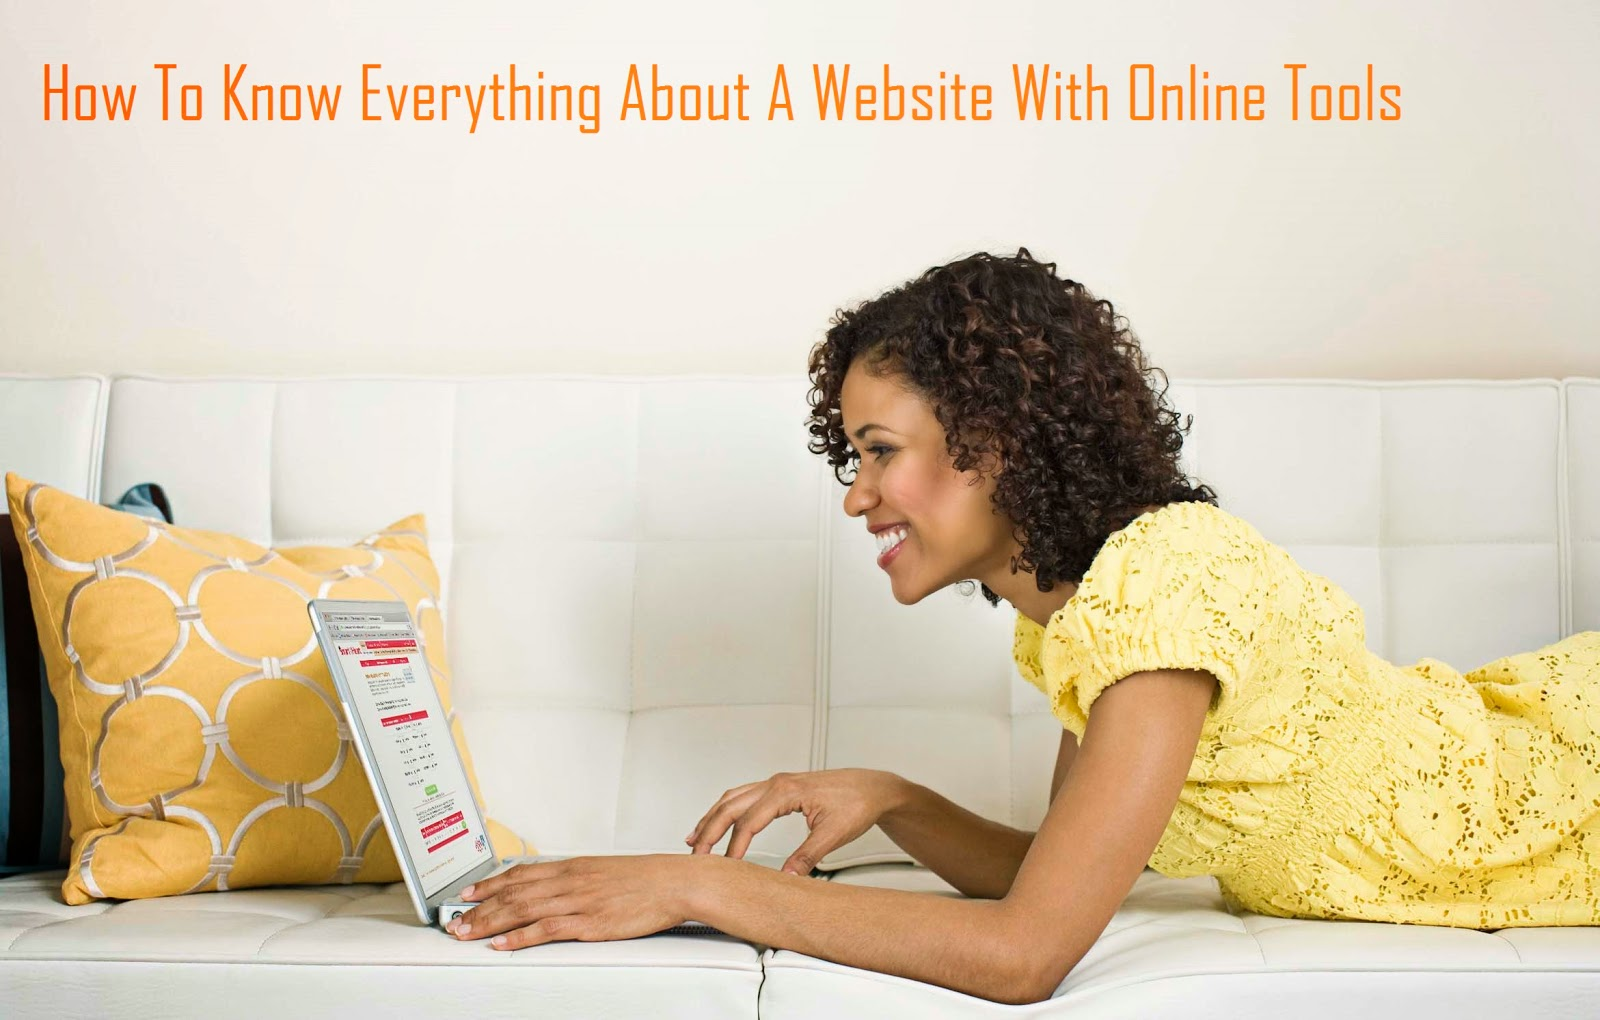 How To Know Everything About A Website With Online Tools